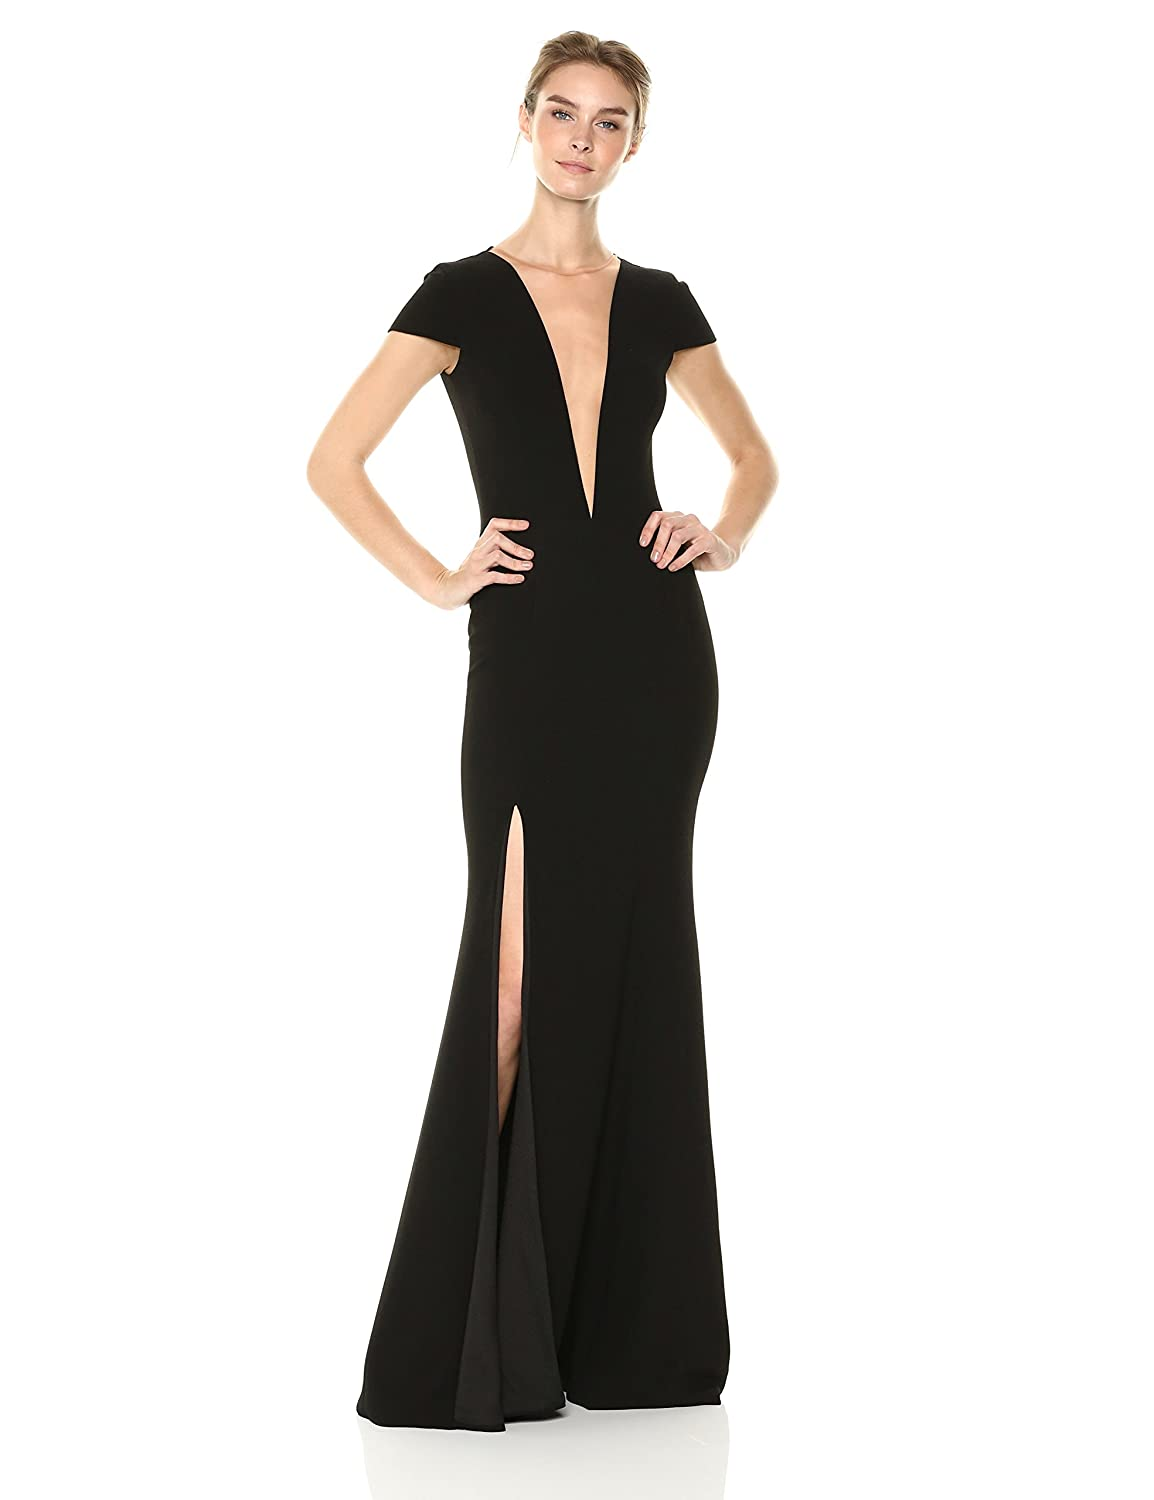 c58e48f867ed Dress the Population Women's Leah Plunging Illusion Cap Sleeve Crepe Gown  with Slit Dress at Amazon Women's Clothing store: